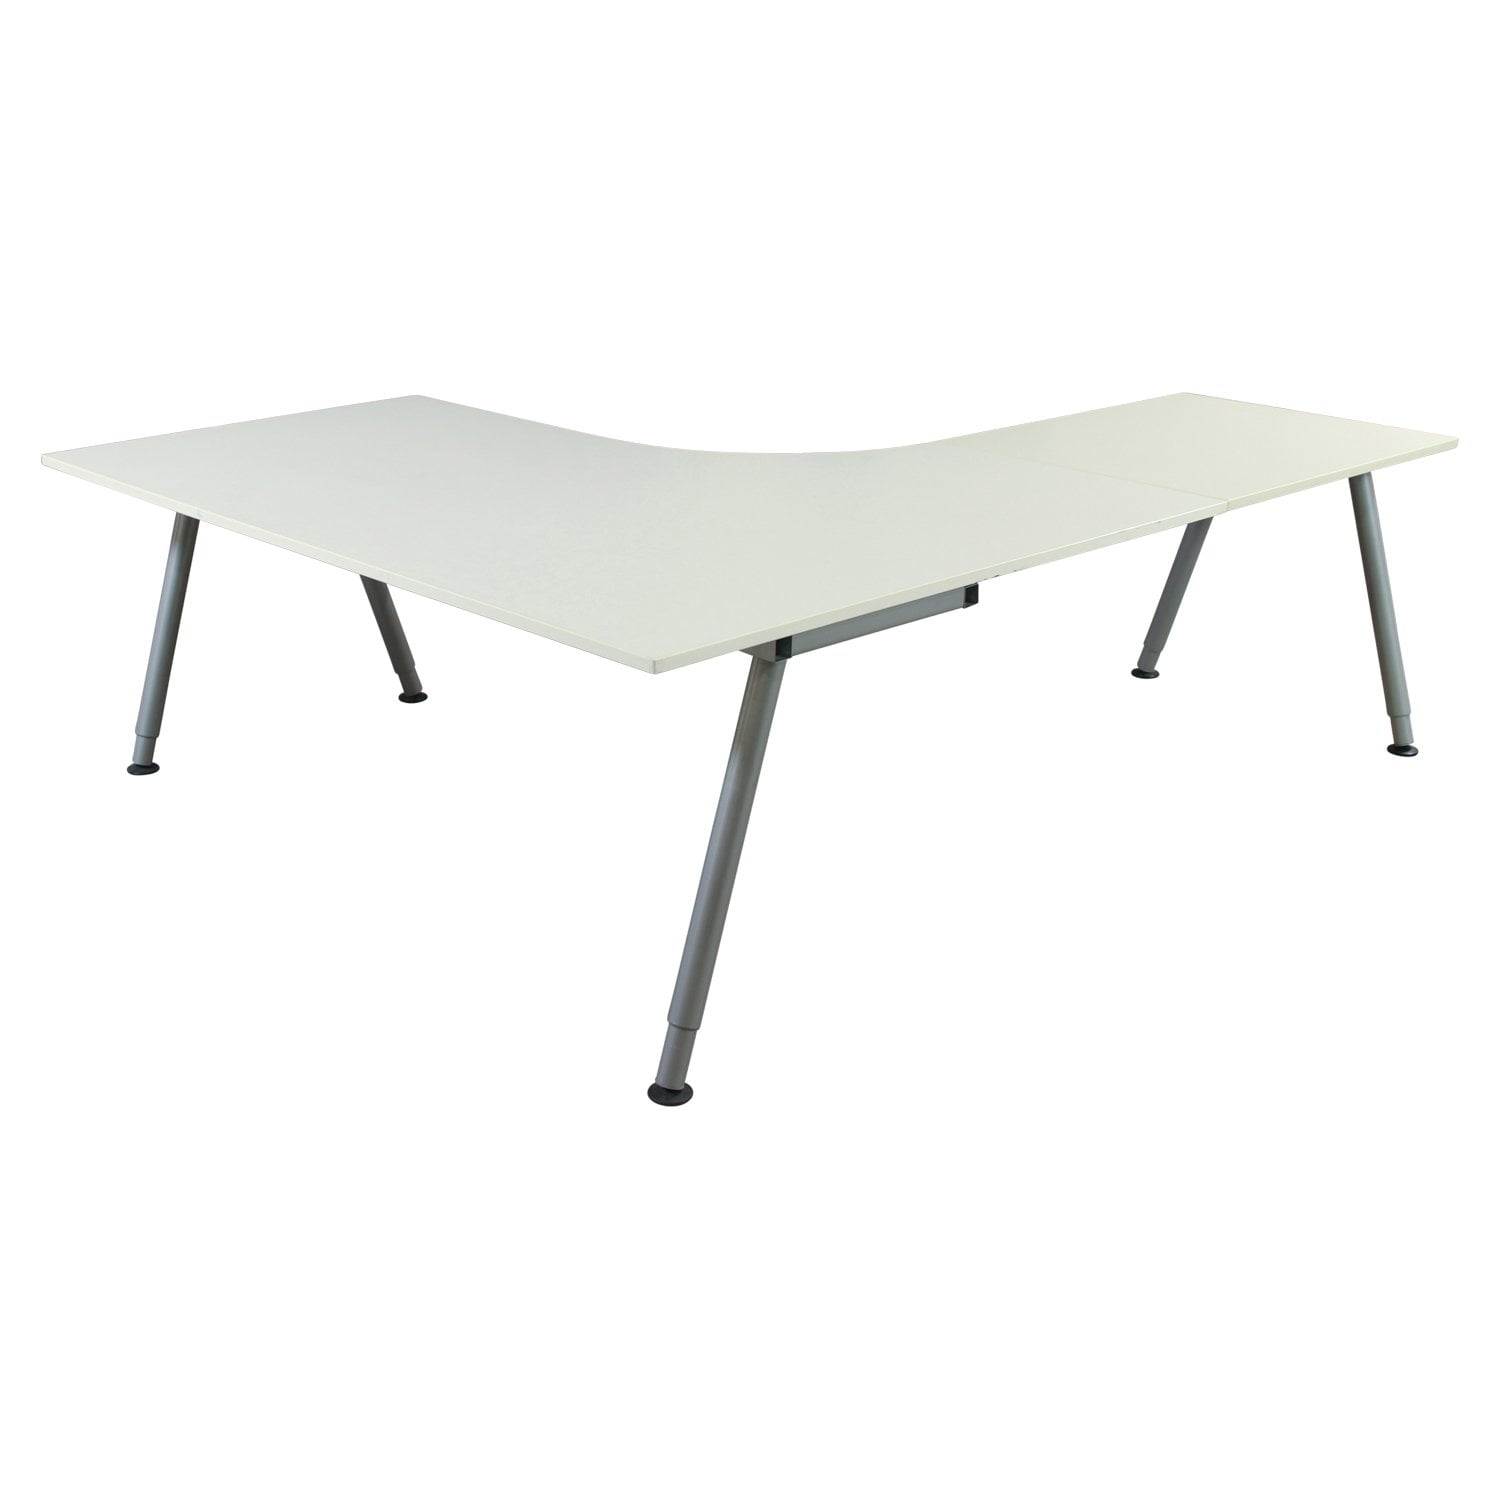 Ikea Galant Used 47 25x63 31 5x24 Inch L Shape Adjustable Height Table White National Office Interiors And Liquidators